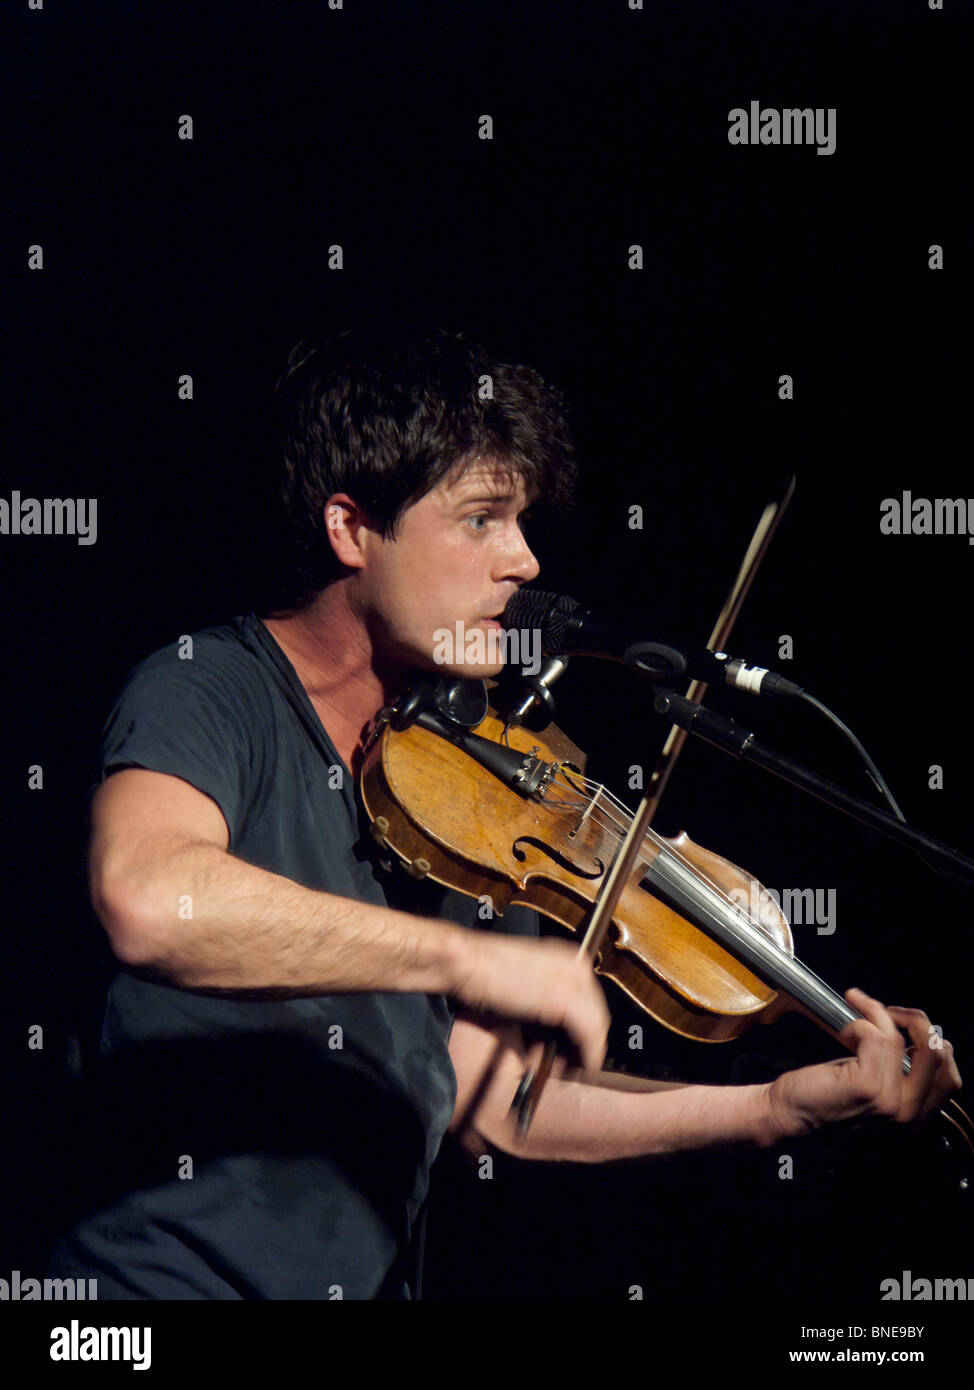 Live music gig - Seth Lakeman in concert - Stock Image